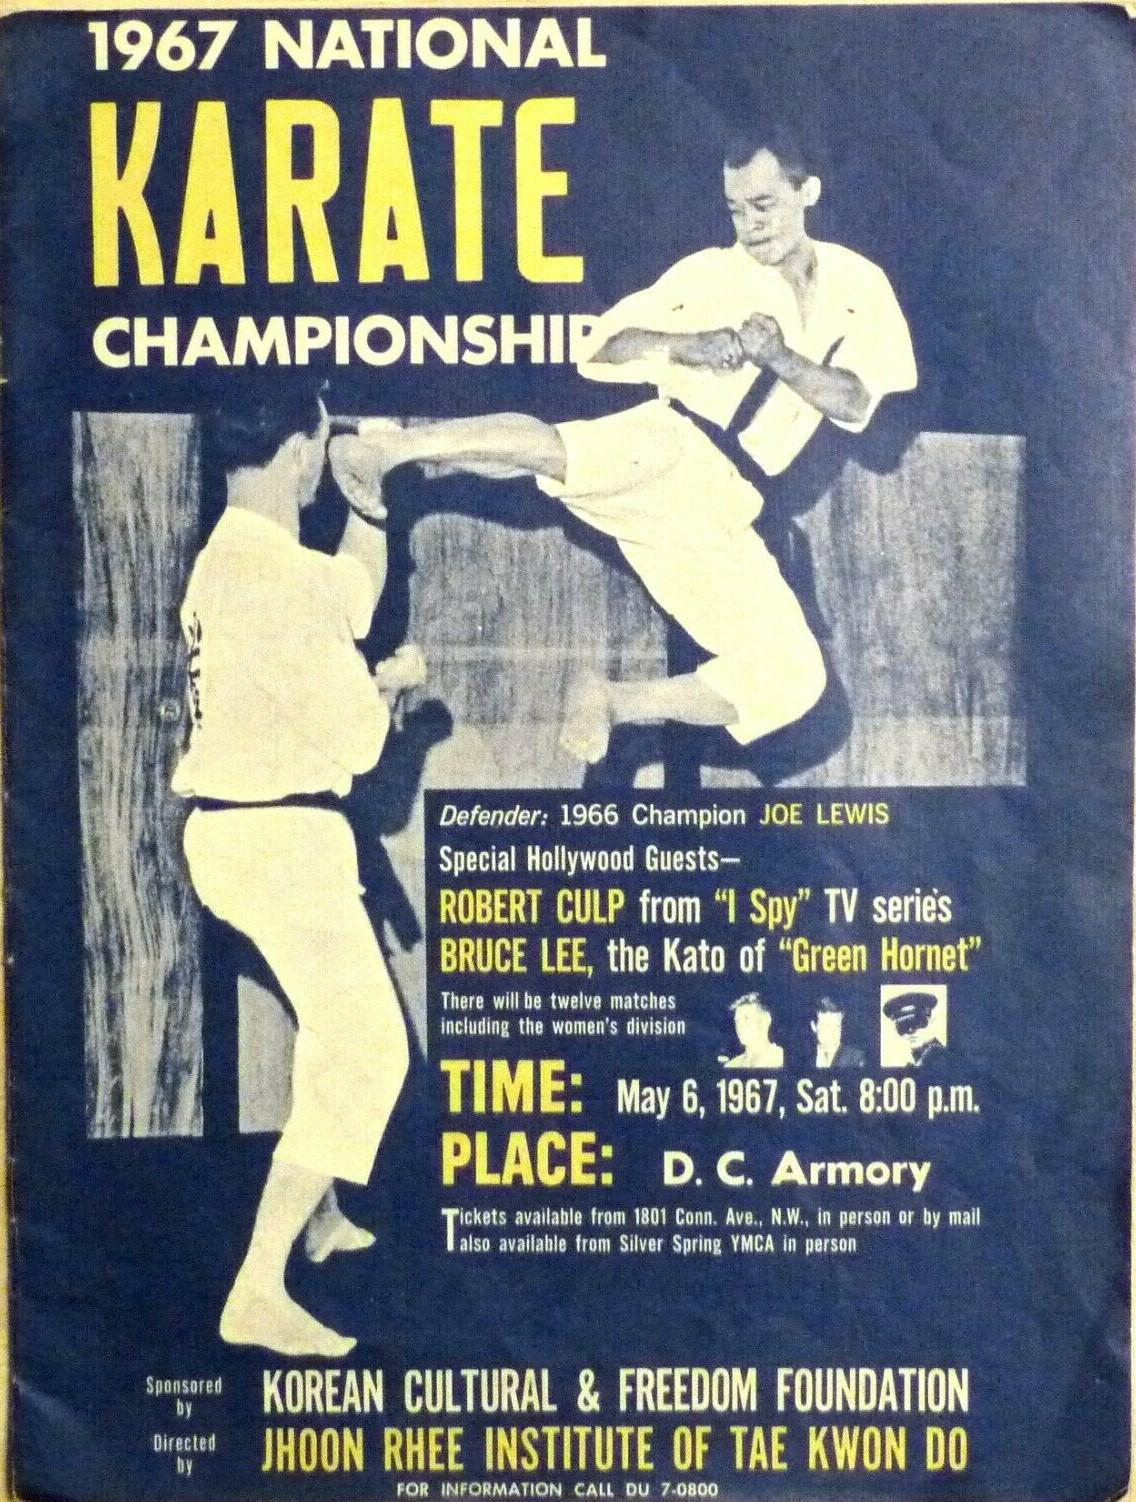 1967 National Karate Championship Program